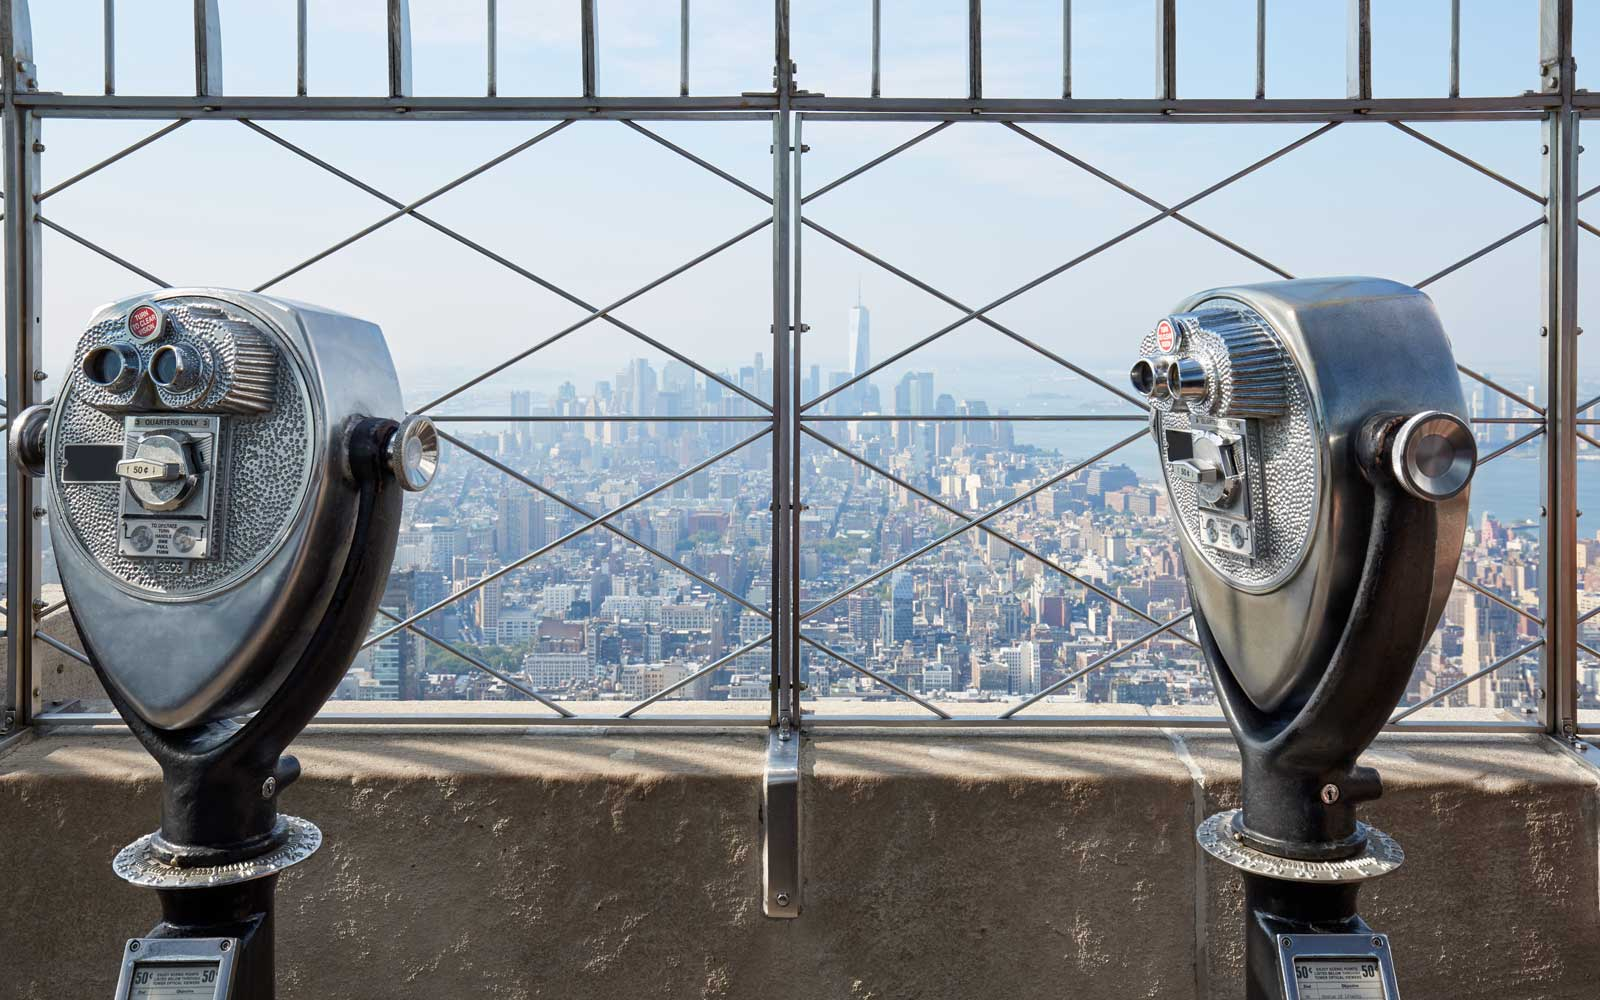 Empire State Building observation deck with two binoculars in a sunny day in New York